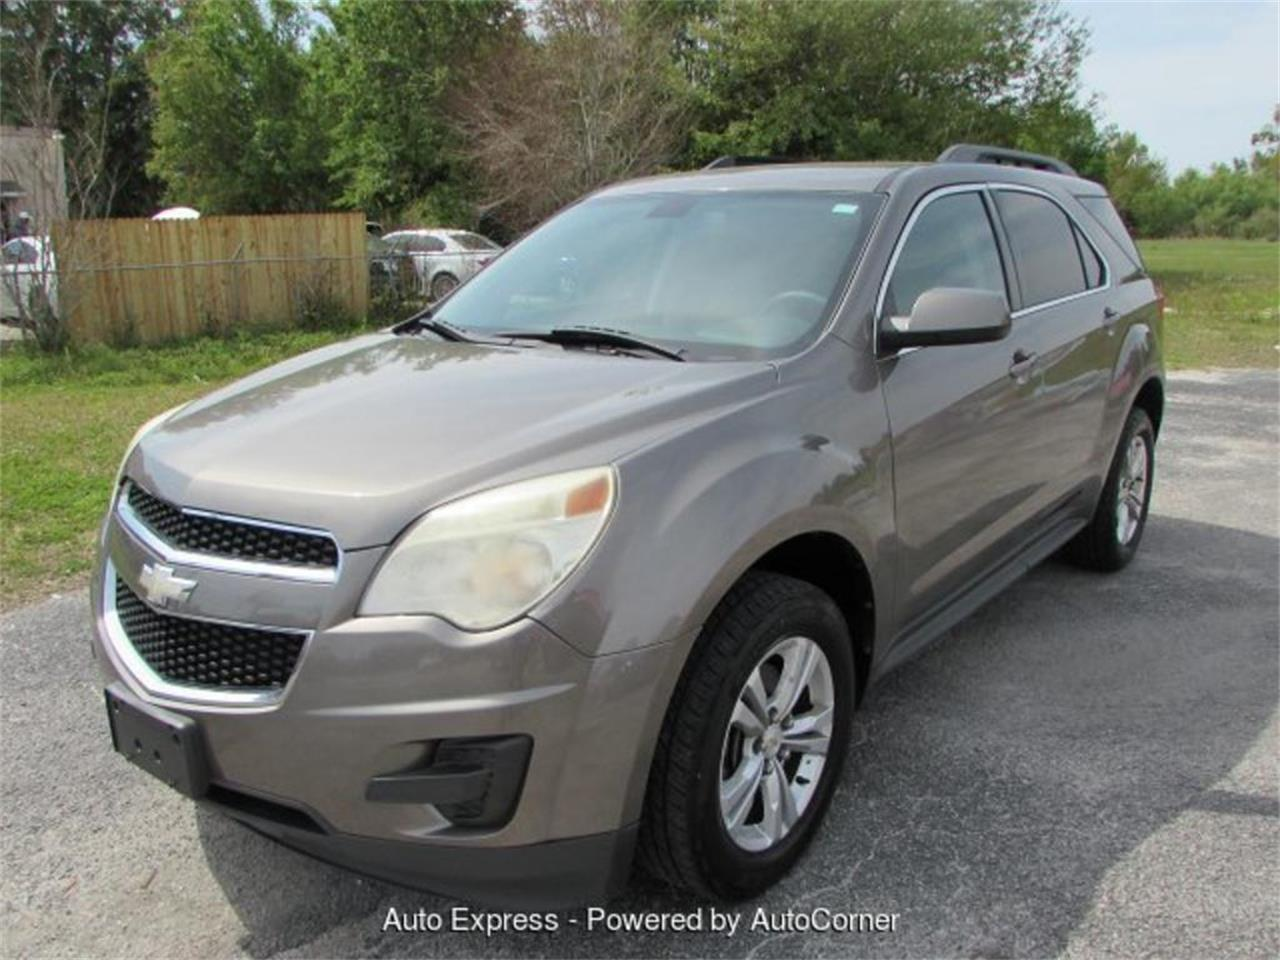 Large Picture of '10 Chevrolet Equinox - $8,999.00 Offered by Auto Express - Q2A3